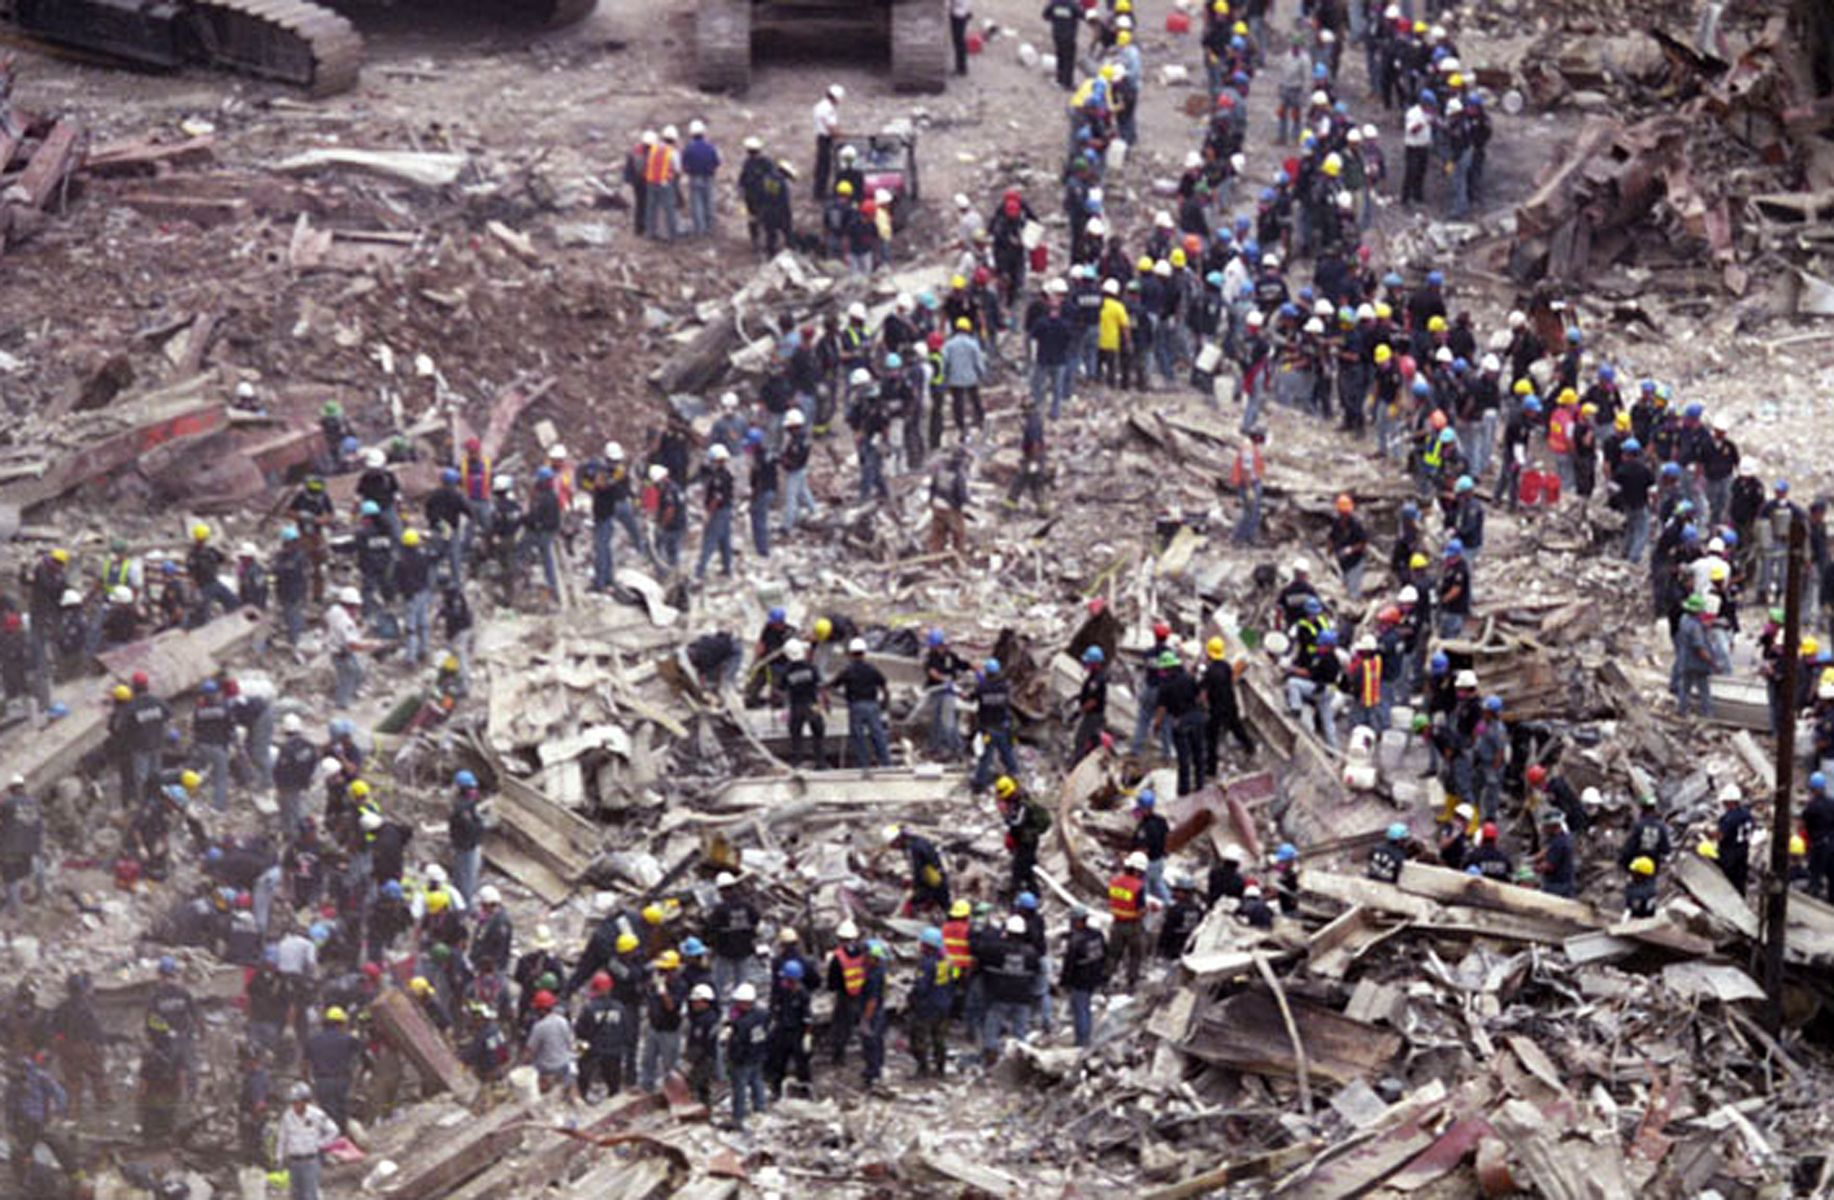 """The day after the horrific events of September 11, thousands of construction workers, first responders, and self-dispatched volunteers converge at Ground Zero to search for survivors, improvising """"bucket brigades"""" to remove debris from the mountainous pile formed by the collapse of the World Trade Center."""